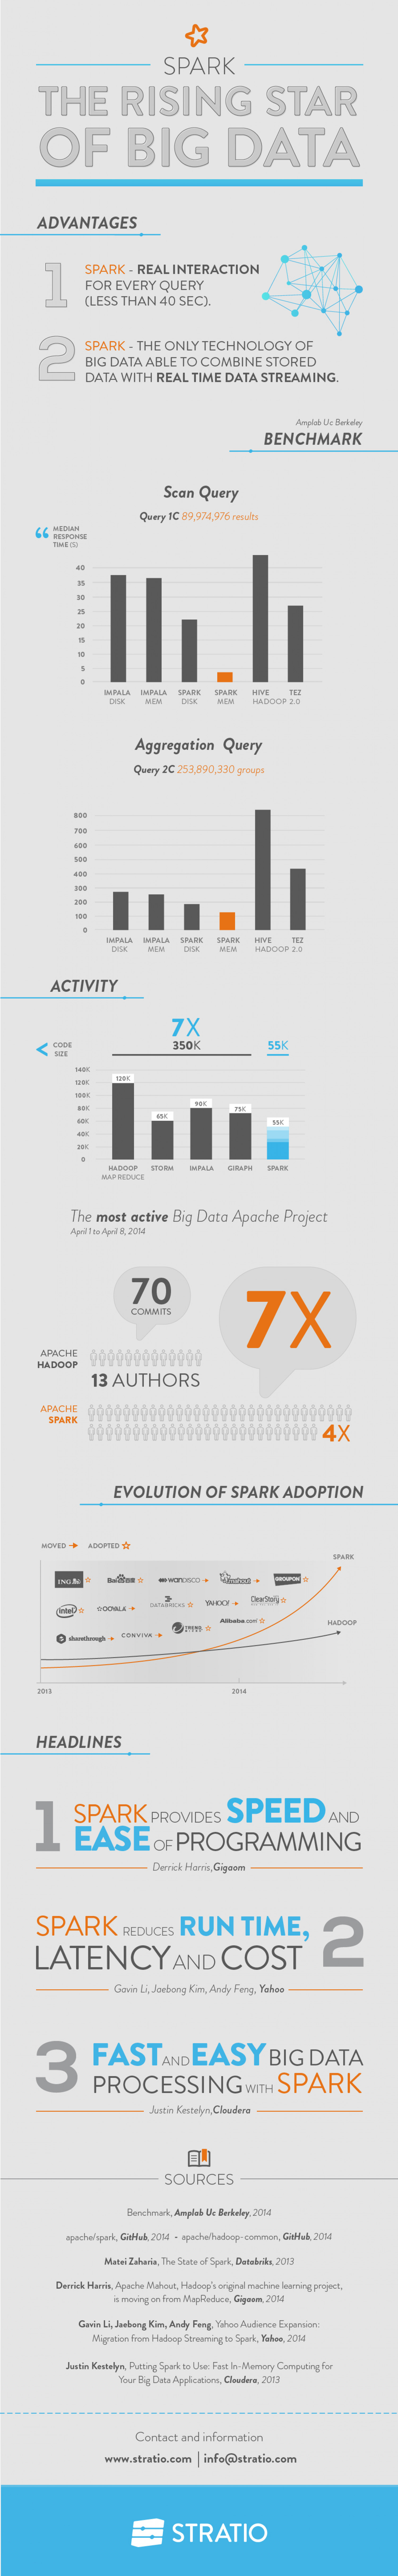 Spark, The Rising Start of Big Data Infographic